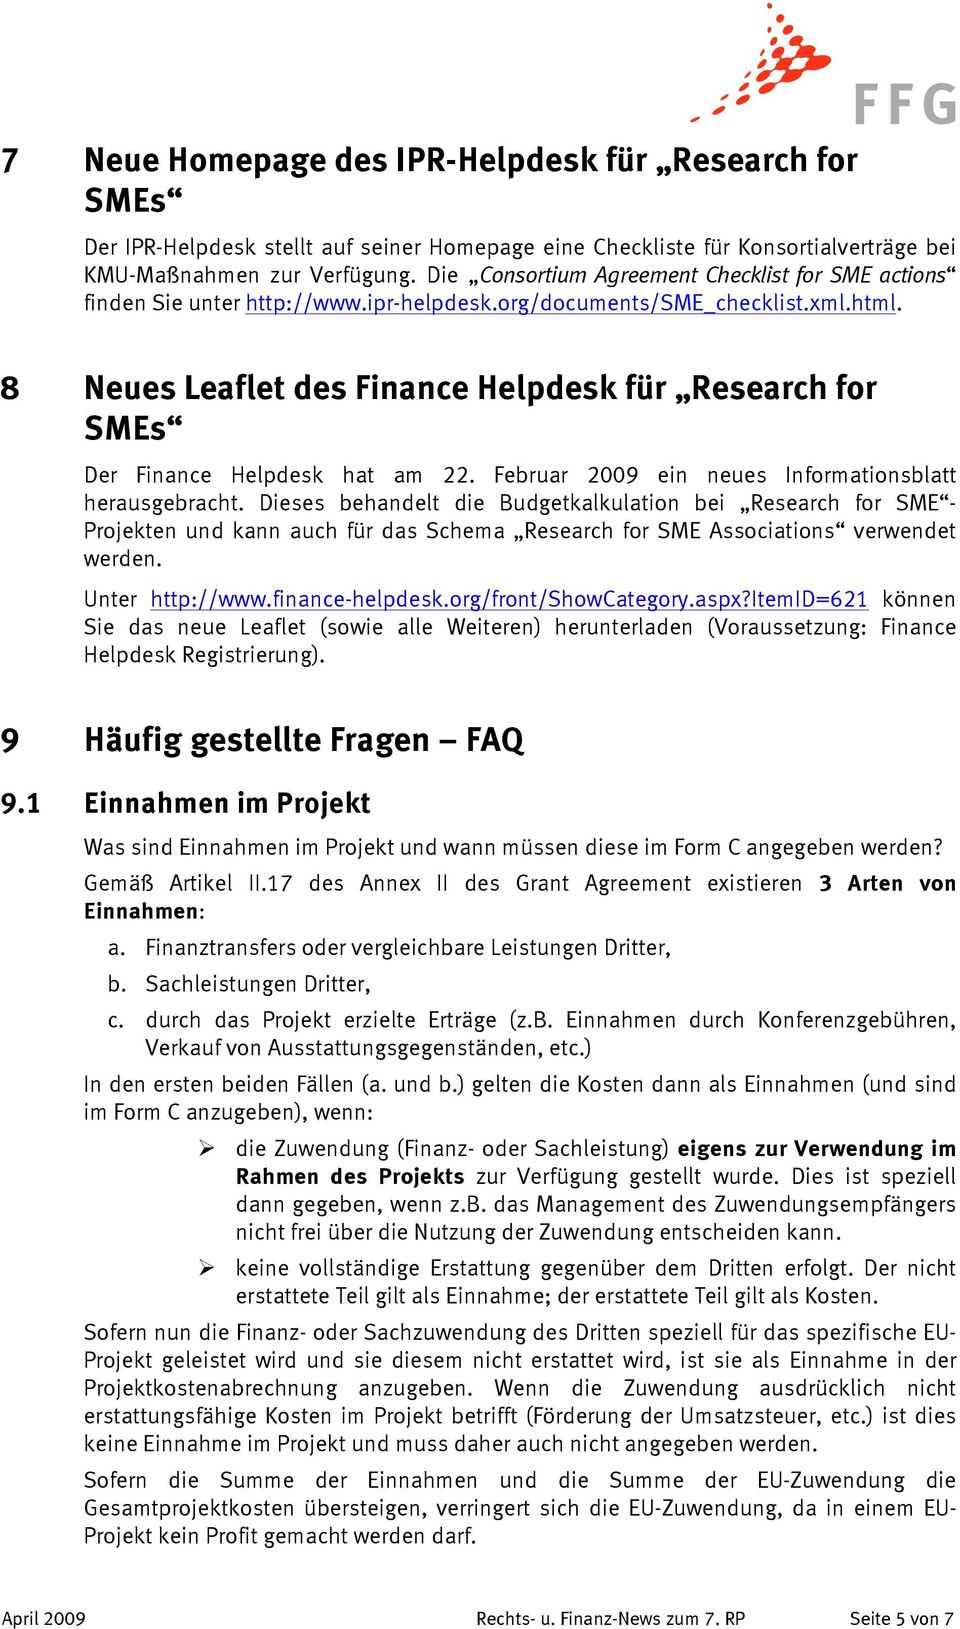 8 Neues Leaflet des Finance Helpdesk für Research for SMEs Der Finance Helpdesk hat am 22. Februar 2009 ein neues Informationsblatt herausgebracht.